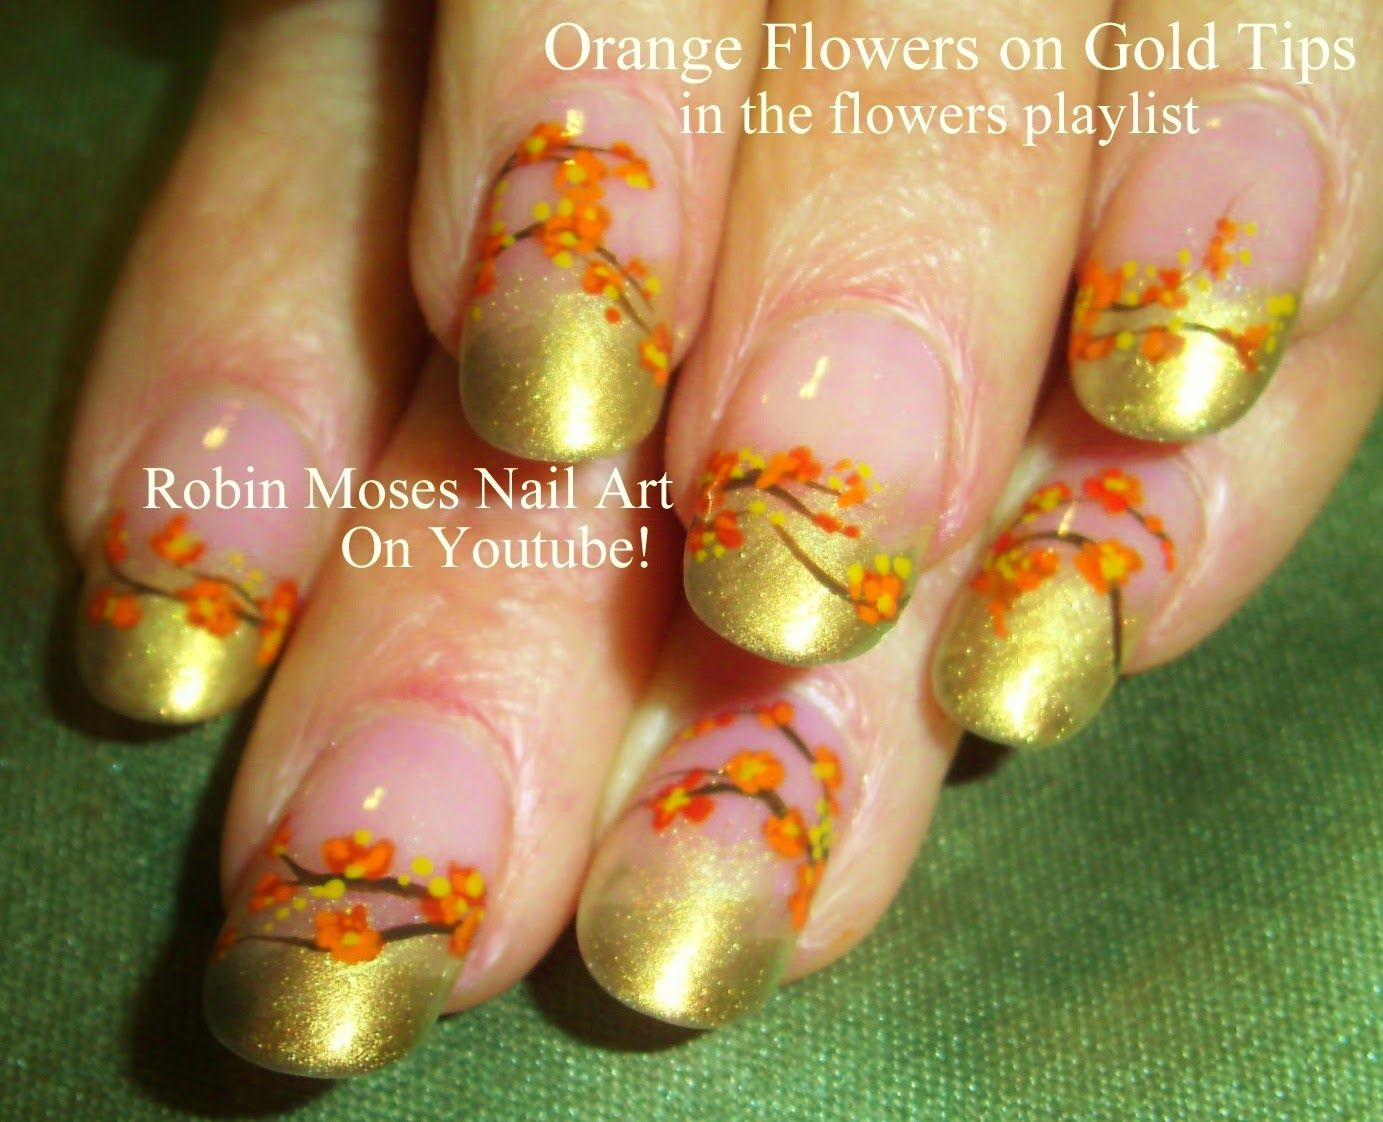 Nail art by robin moses natural health beauty pinterest art orange nails orange and gold nails flower nail art robin moses tutorial design how to do it yourself gold tip nails gold prom nails solutioingenieria Gallery